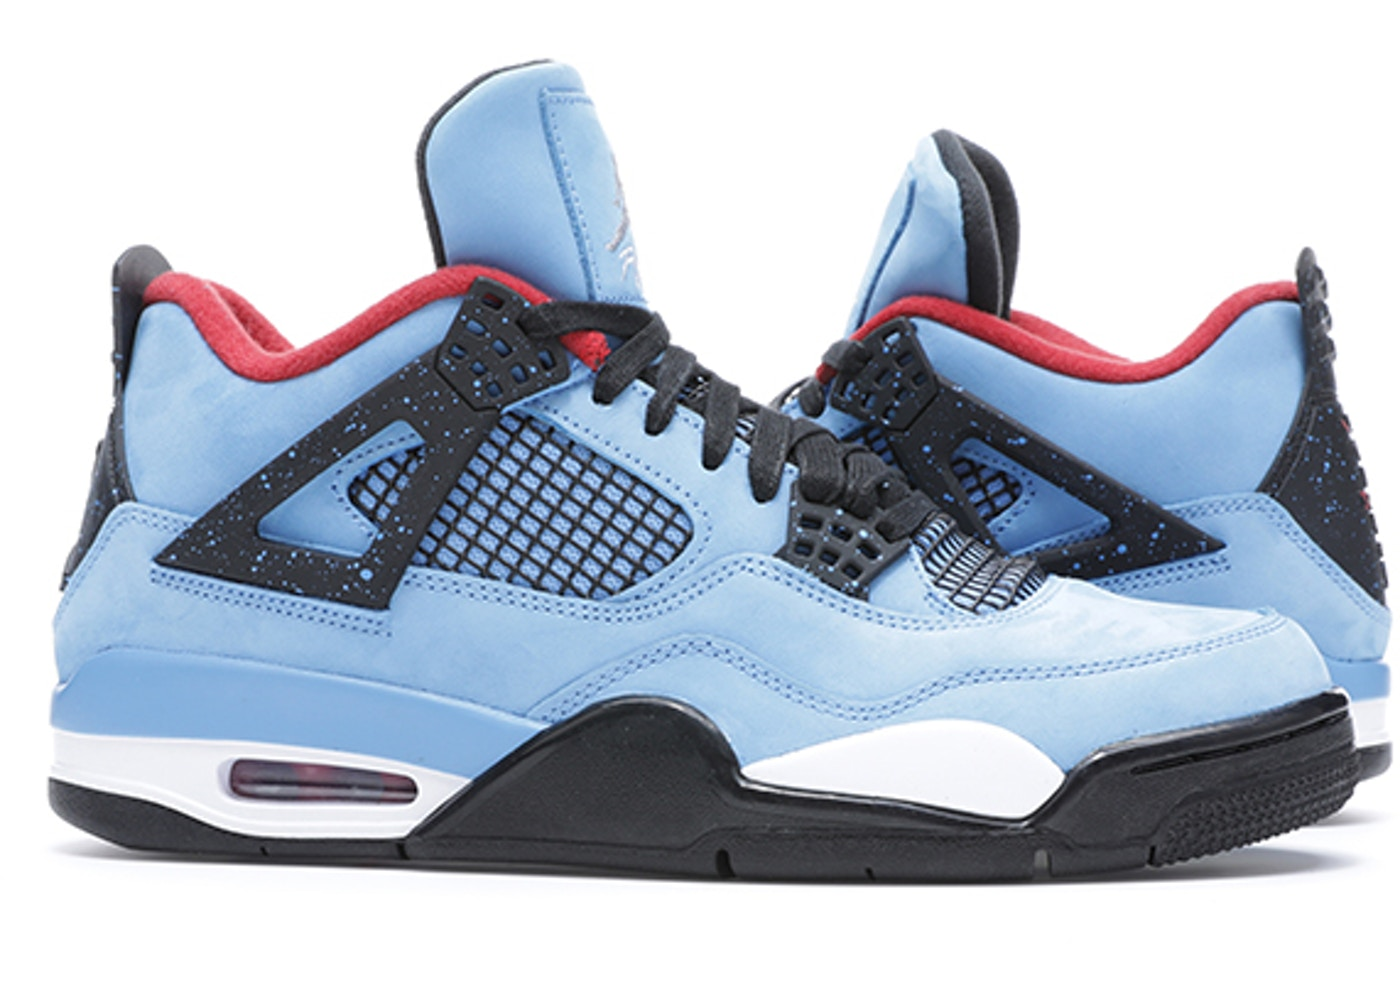 competitive price 00b4c af6db Jordan 4 Retro Travis Scott Cactus Jack. Home · sneakers · Air Jordan ...